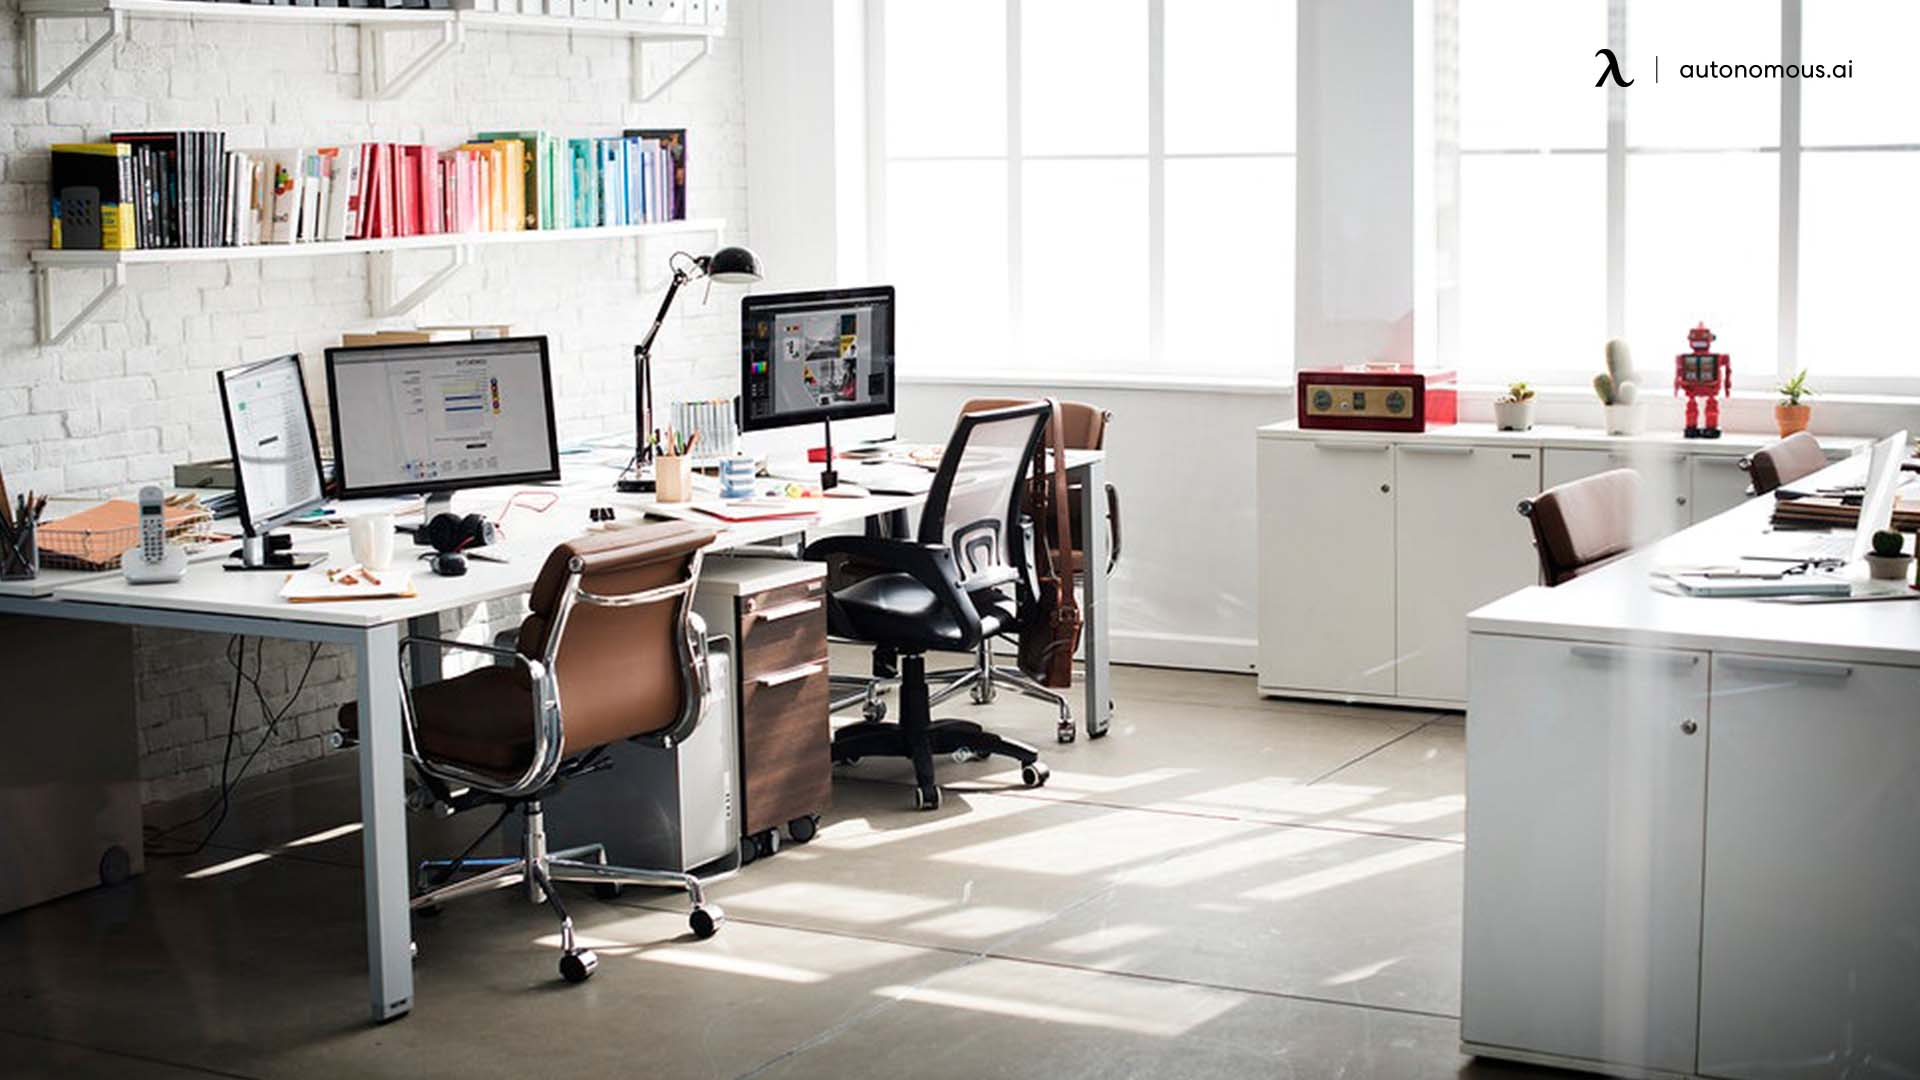 What changes can make in the office